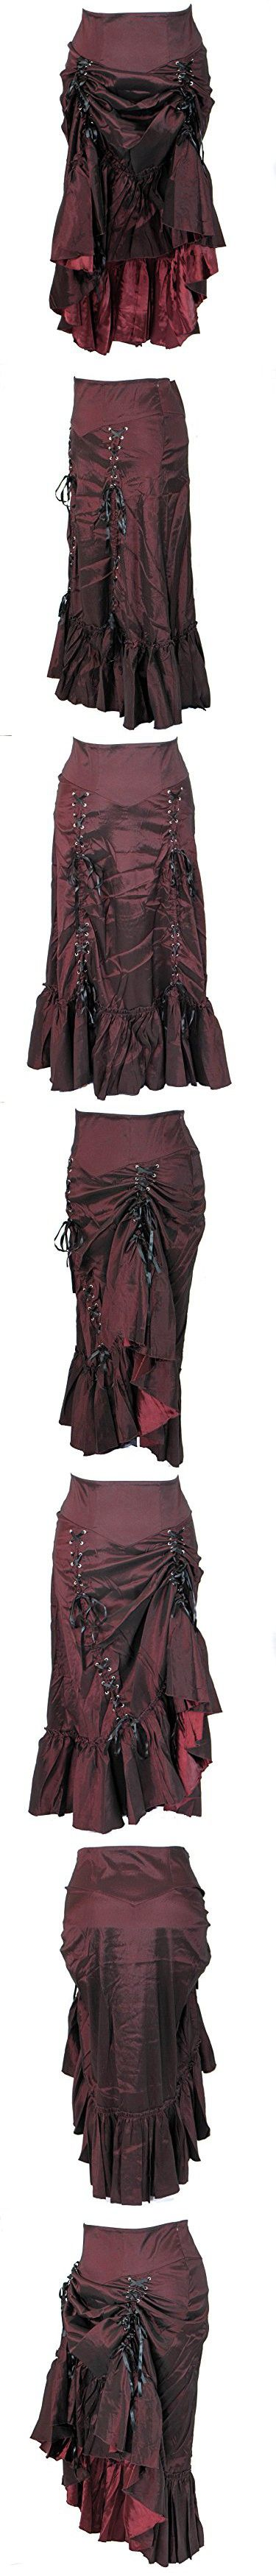 Plus Size Burgundy Gothic Steampunk Burlesque 3 Way Lace Up Skirt (2X)